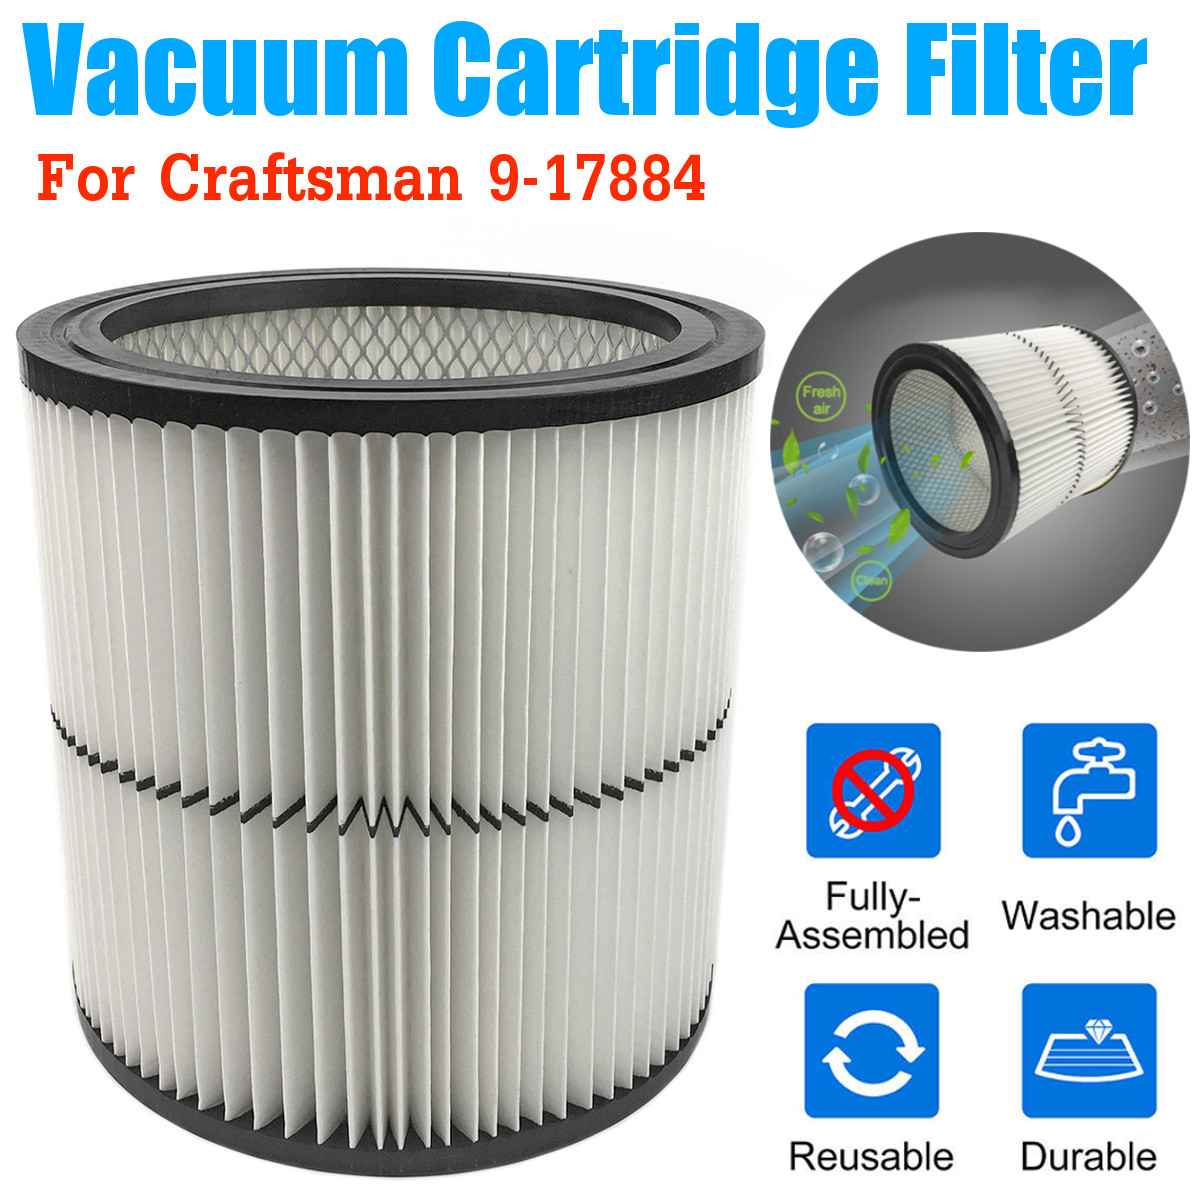 Replacement Vacuum Cleaner Filter For Craftsman Dry Debris Pickup 9-17884 Wet Dry Vac Air Filter Shop Vacuum Cleaner PartsReplacement Vacuum Cleaner Filter For Craftsman Dry Debris Pickup 9-17884 Wet Dry Vac Air Filter Shop Vacuum Cleaner Parts